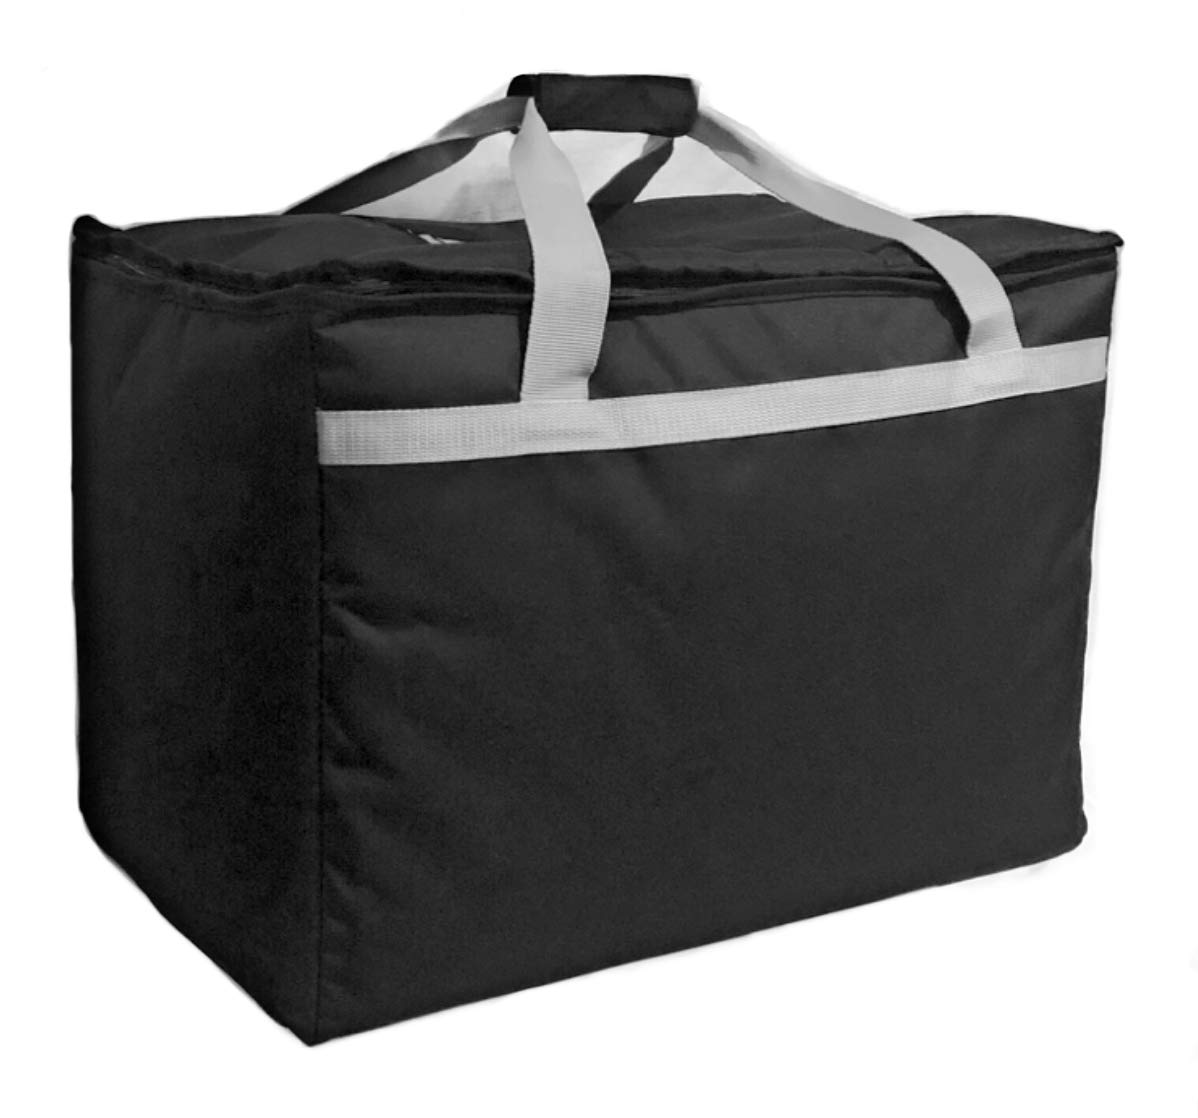 Candid- Insulated Food Delivery Bag (21''L x 14''W x 15''H), Hot/Cold Thermal Lightweight Grocery, Catering, Delivery or Party Bag. by CANDID